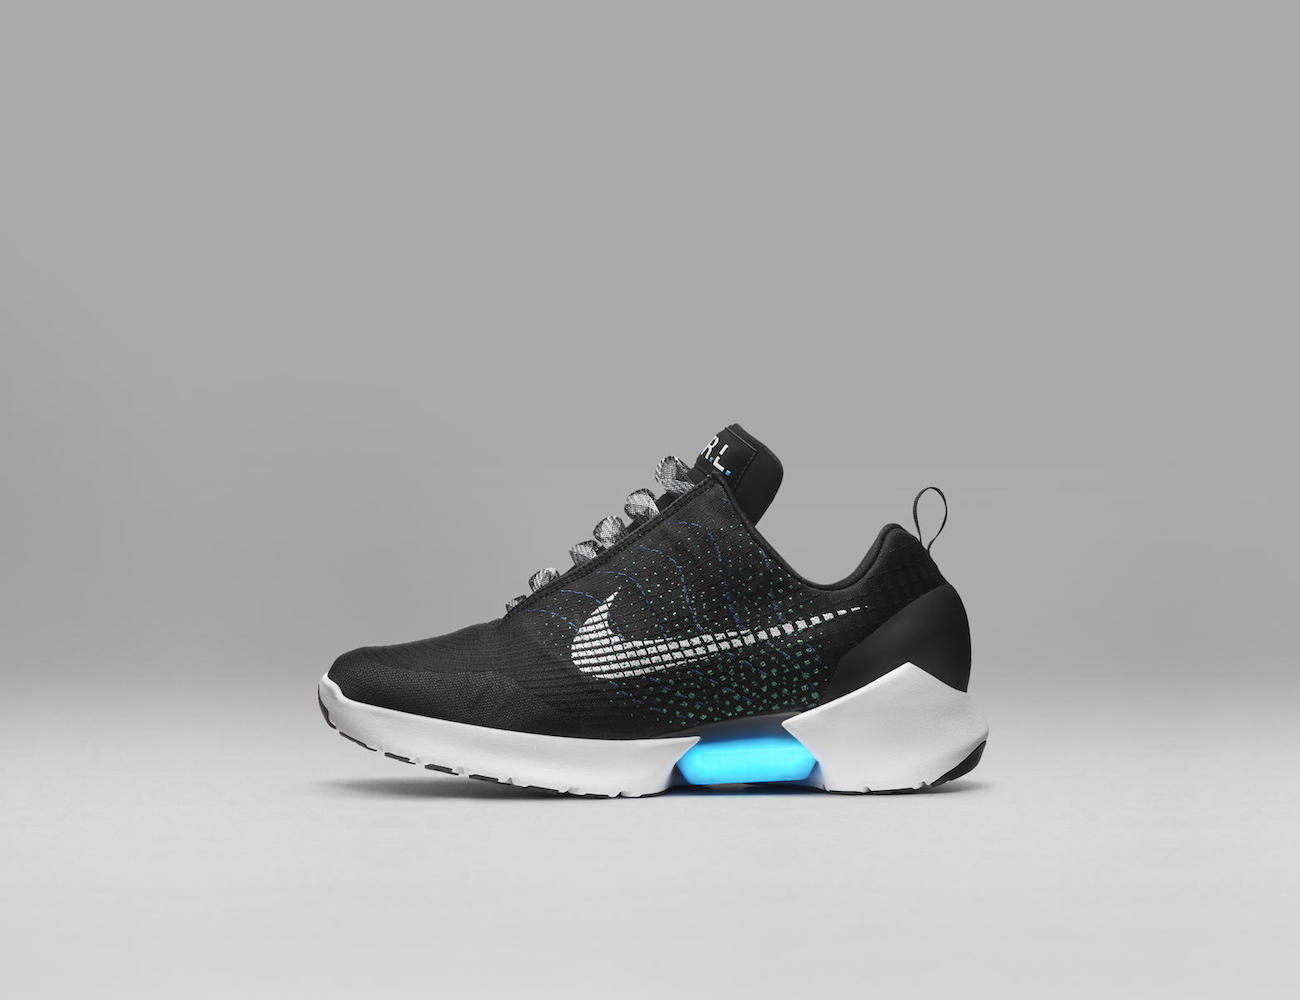 hyperadapt-self-tying-sneakers-by-nike-02